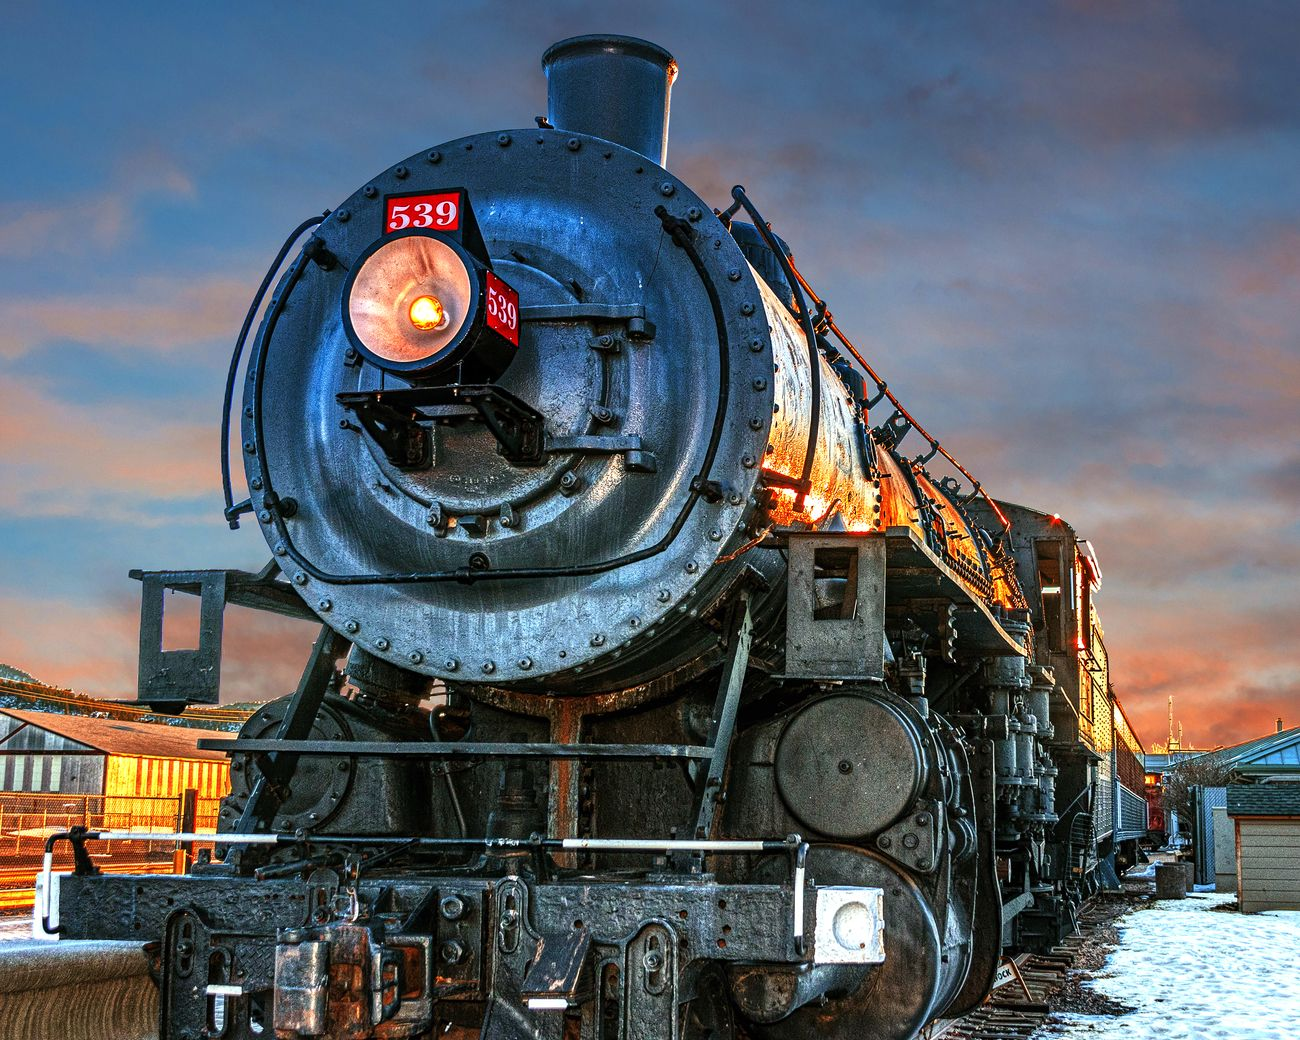 Steam Train Engine #539 for the Grand Canyon Train in Williams Arizona